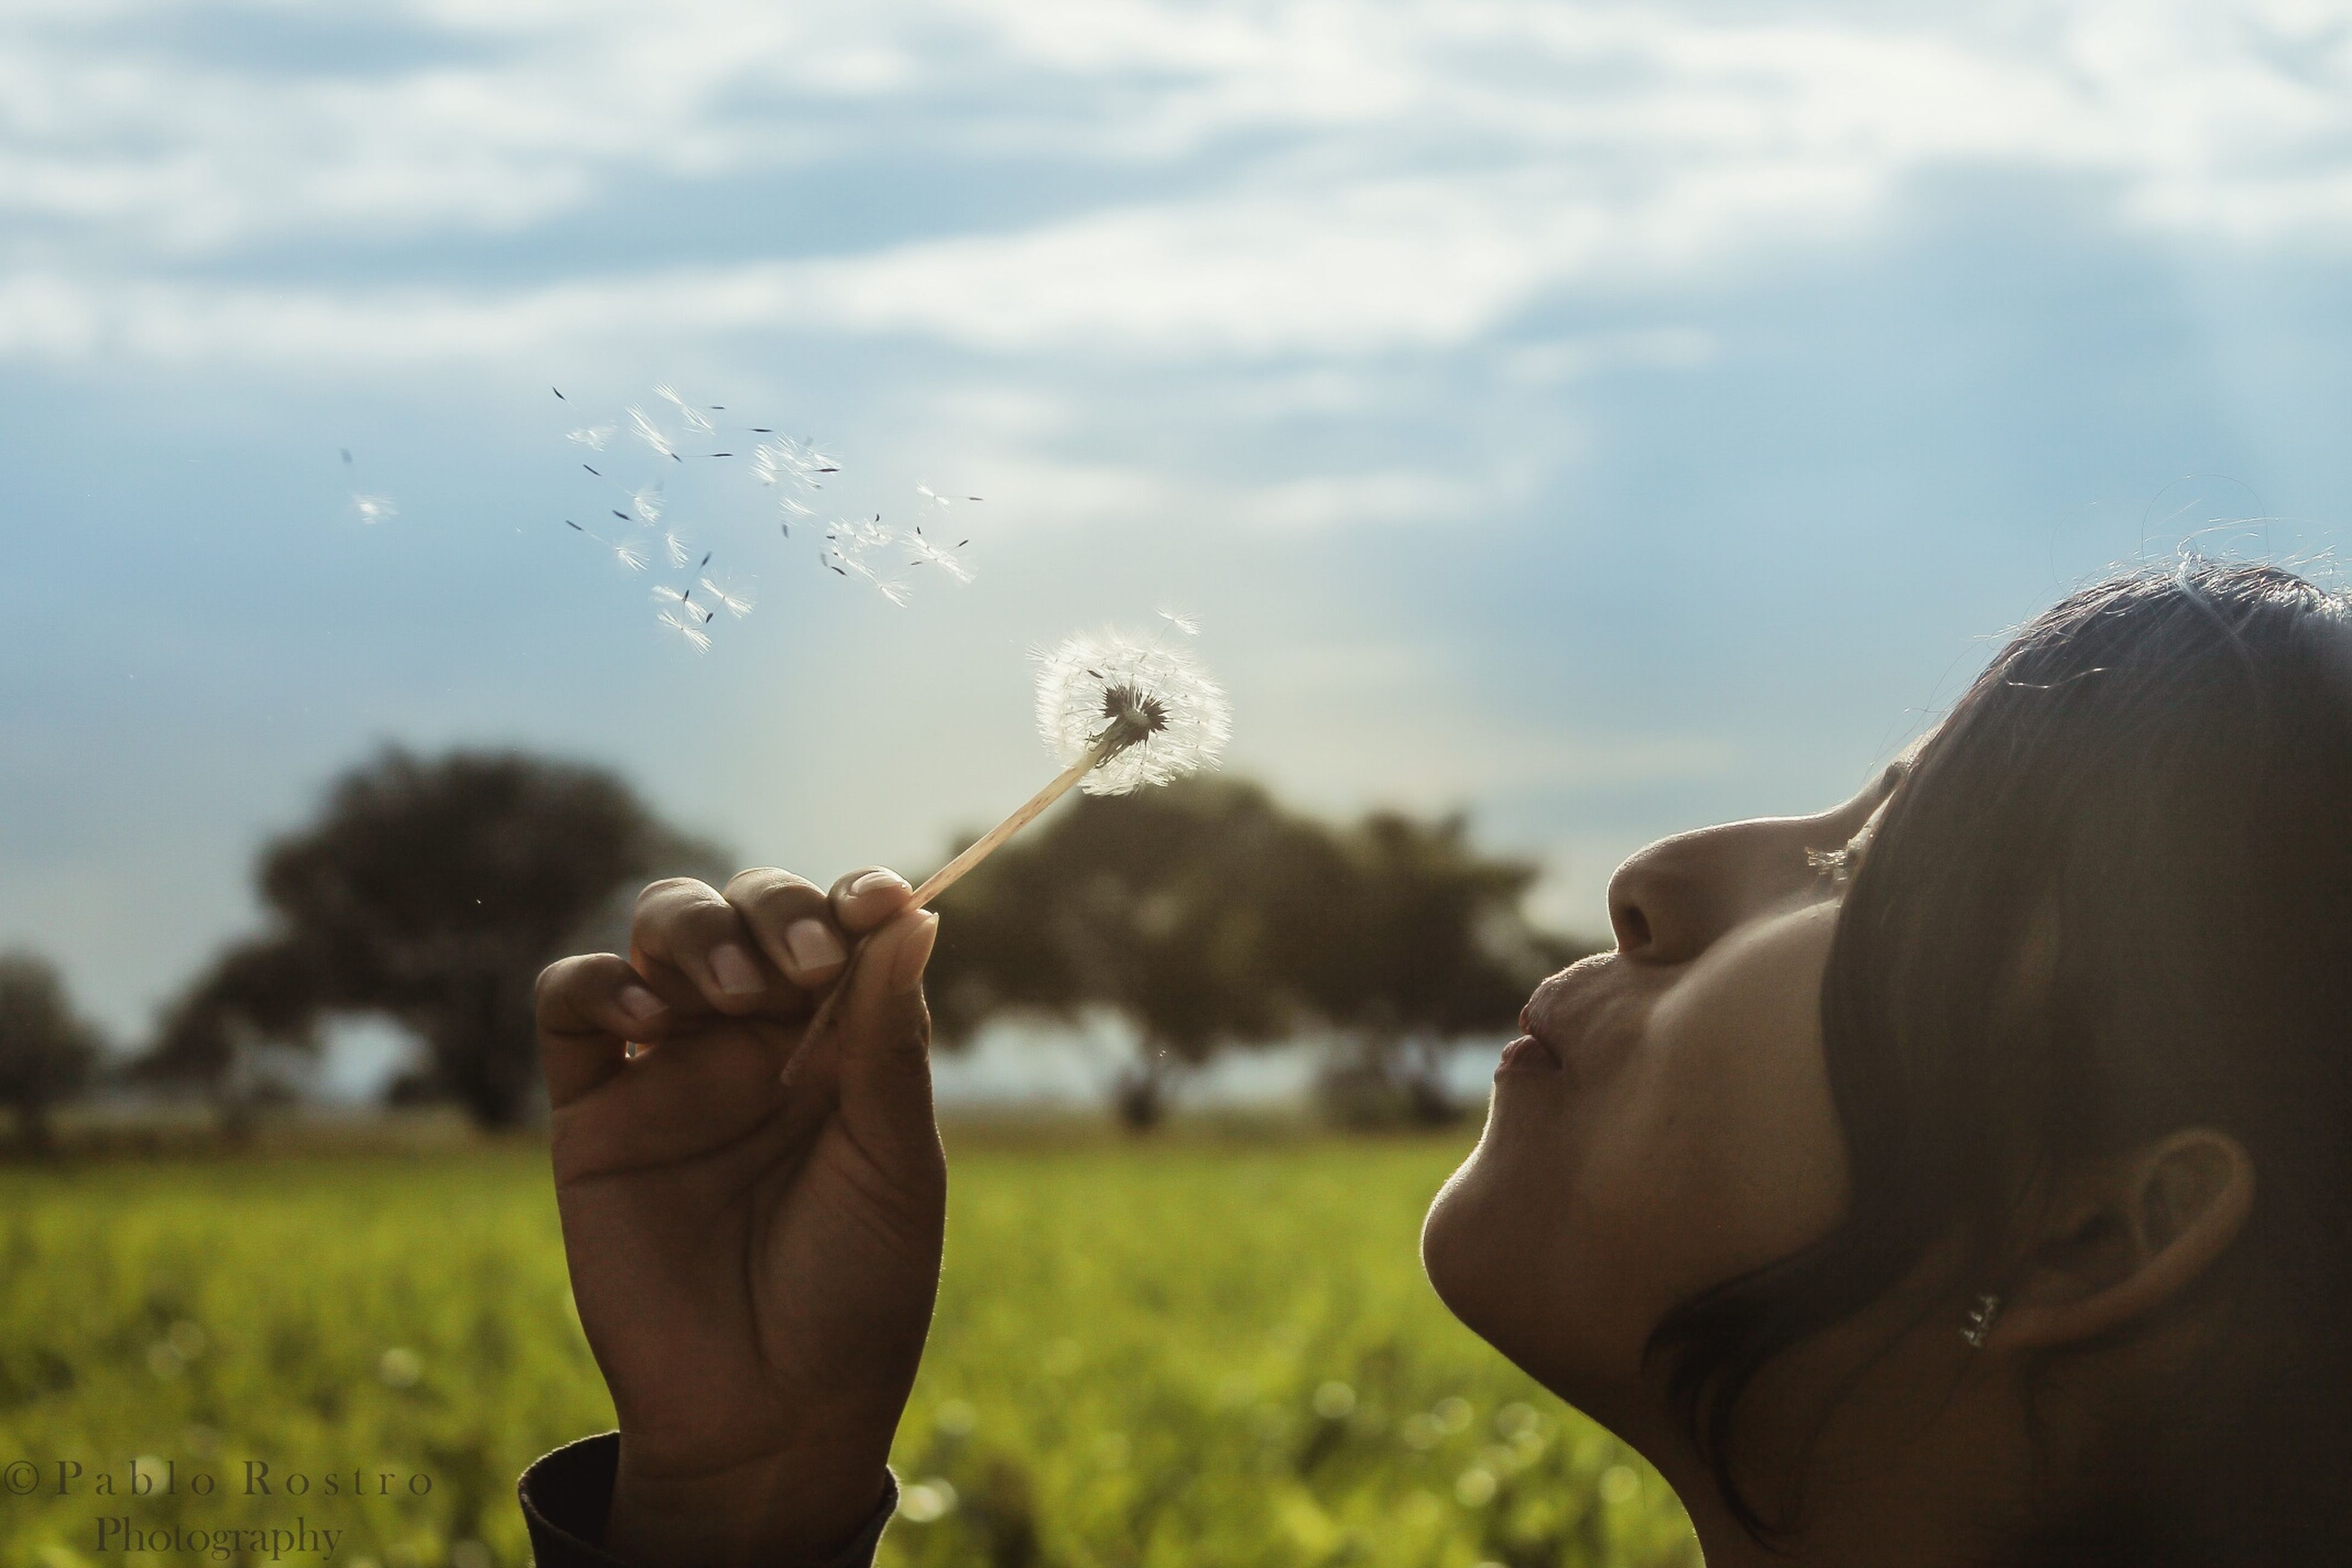 lifestyles, leisure activity, sky, focus on foreground, men, person, holding, field, rear view, waist up, headshot, tree, nature, cloud - sky, bubble, outdoors, day